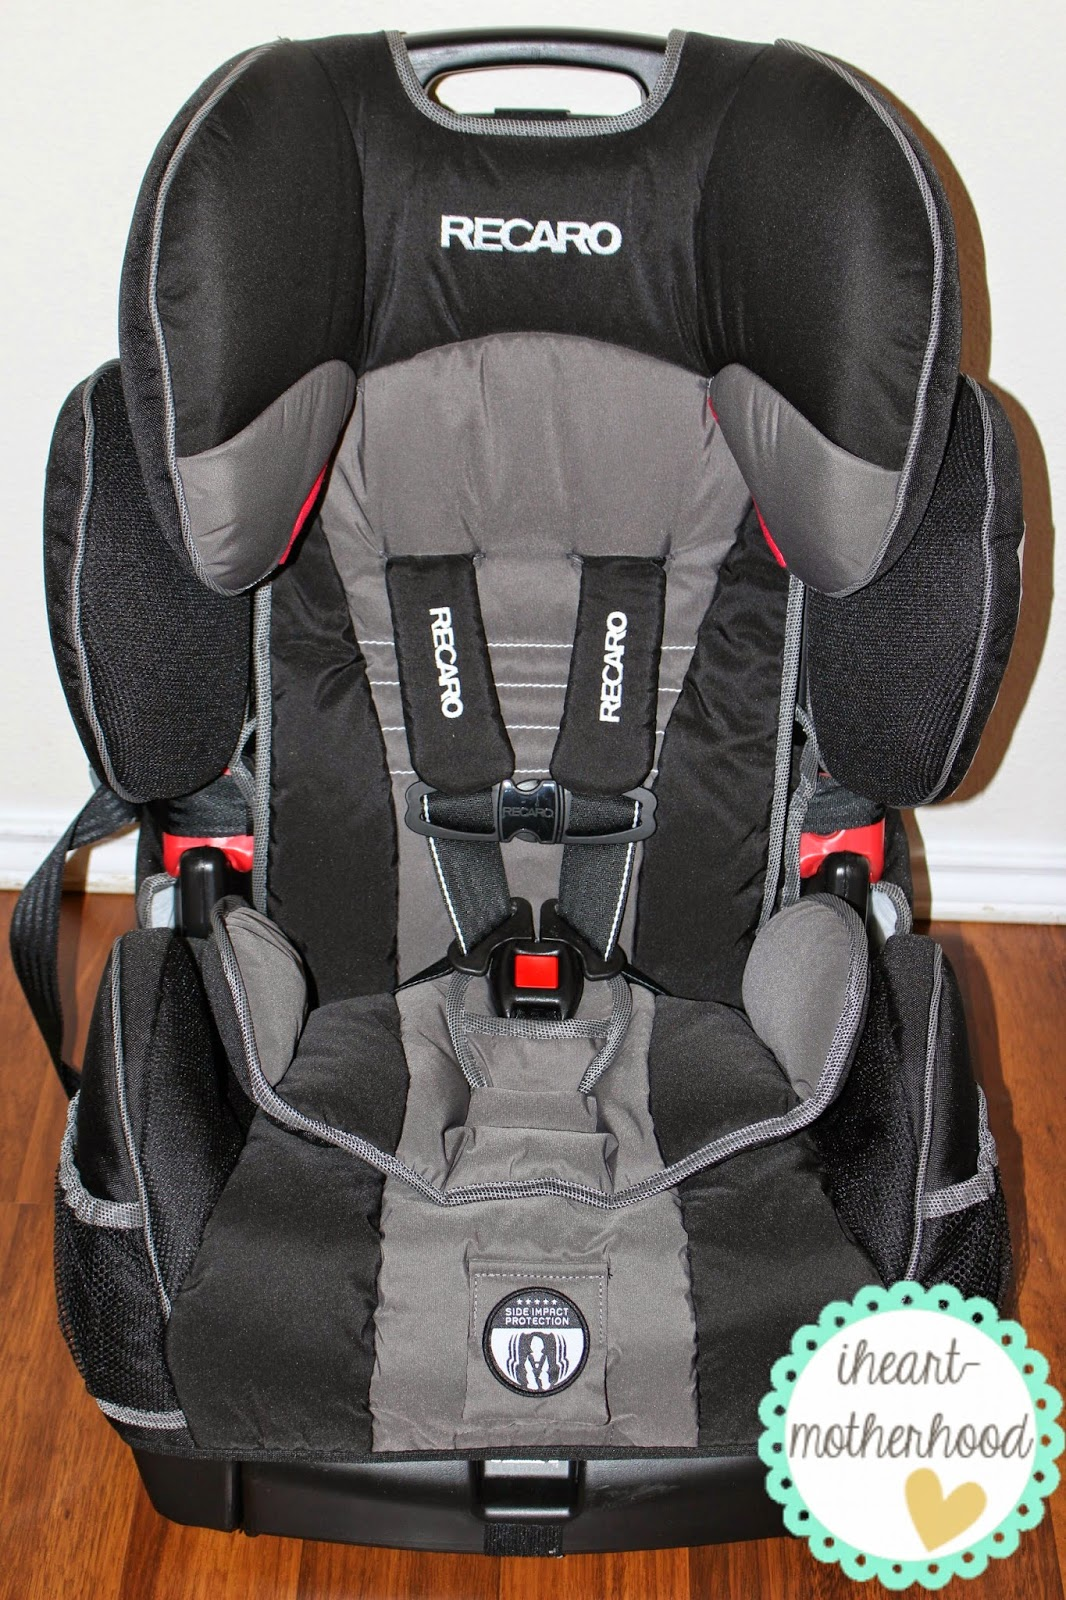 Recaro Performance Sport >> Recaro Performance Sport Baby Seat